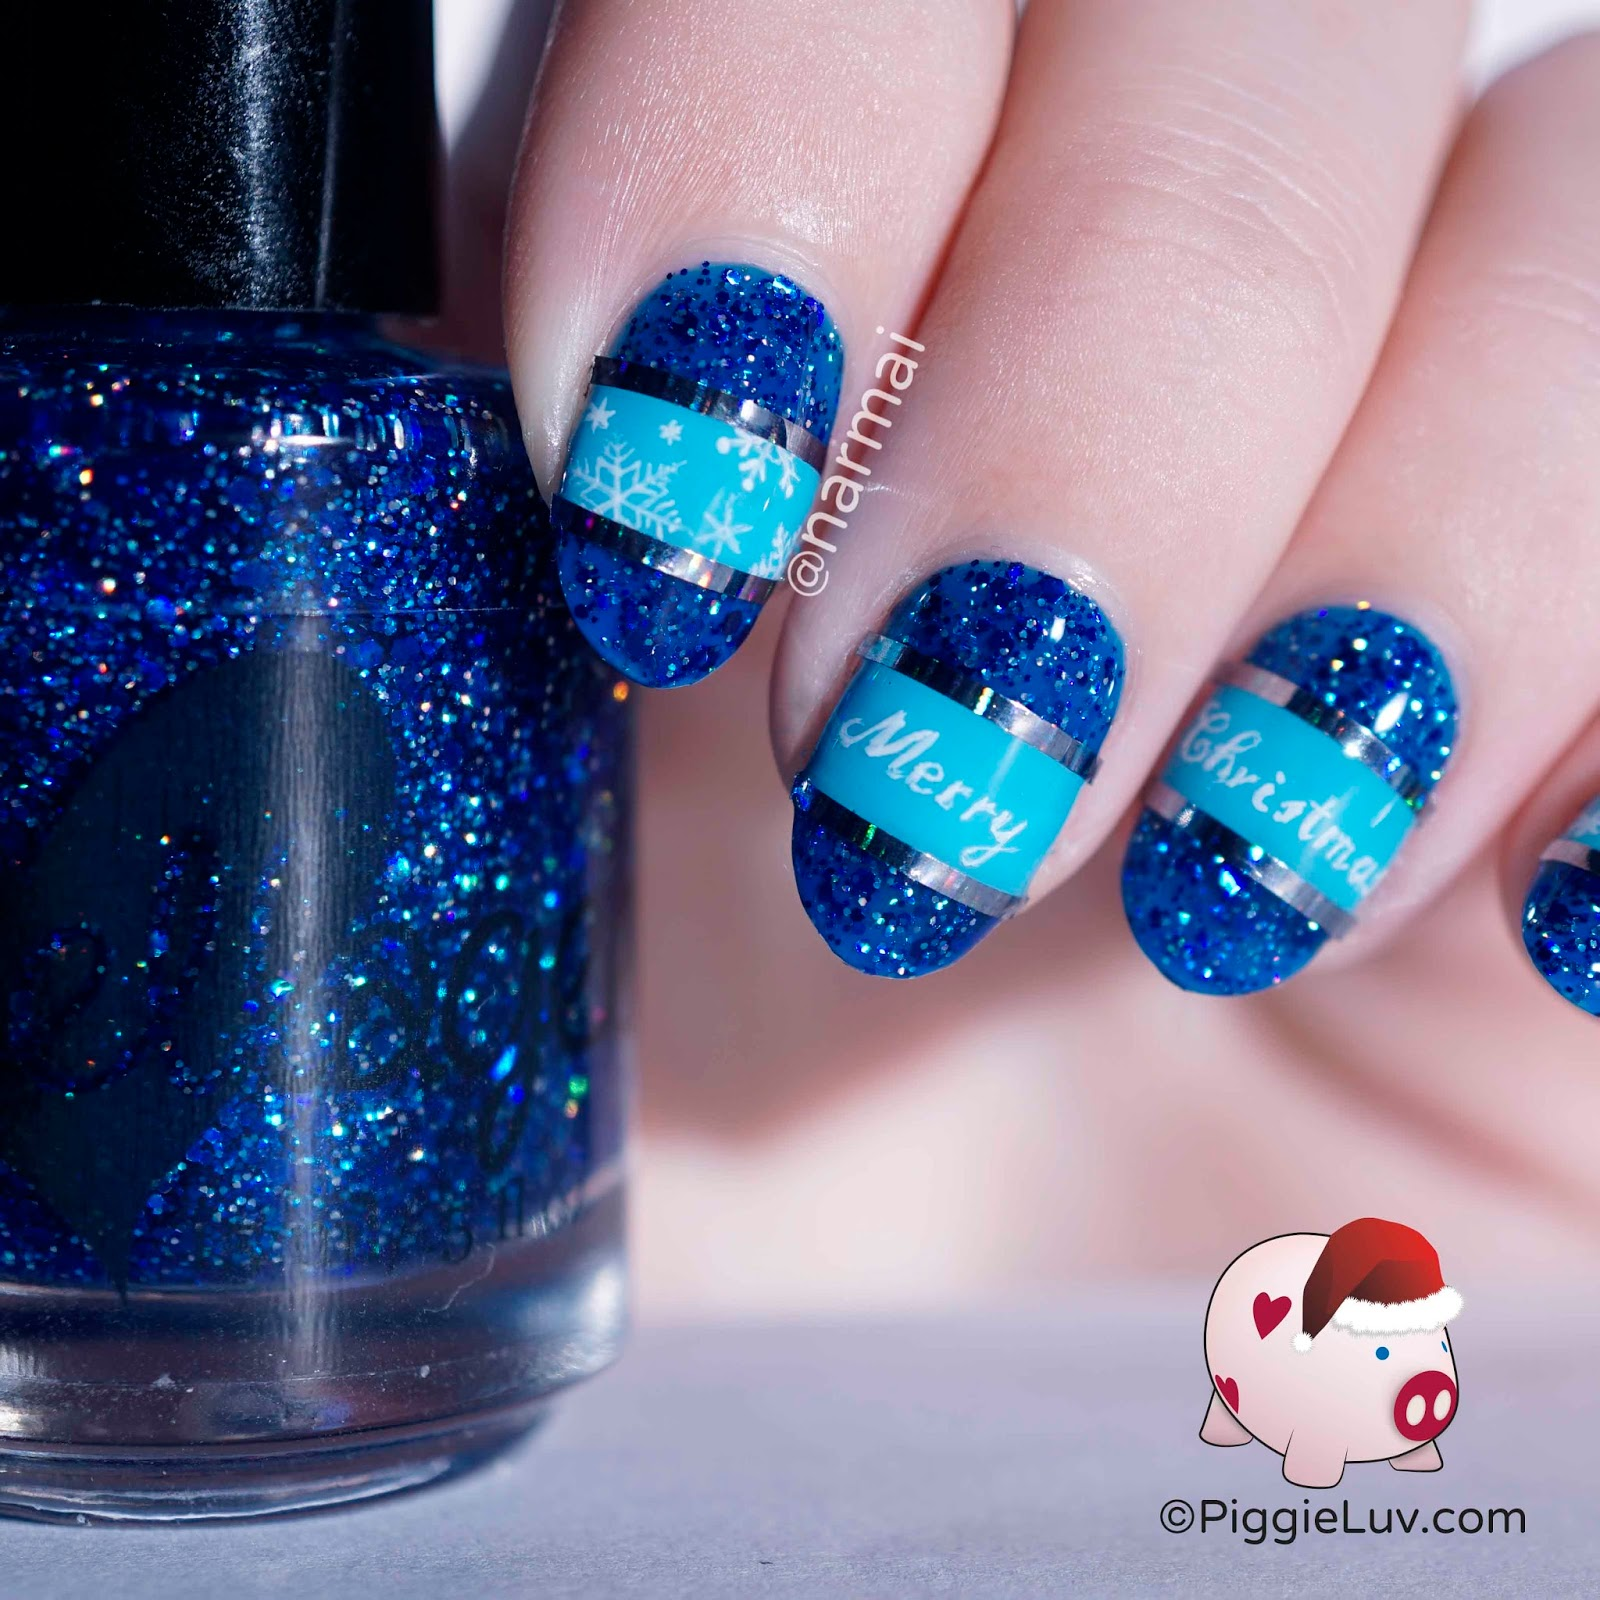 piggieluv freehand blue christmas nail art - Blue Christmas Nails